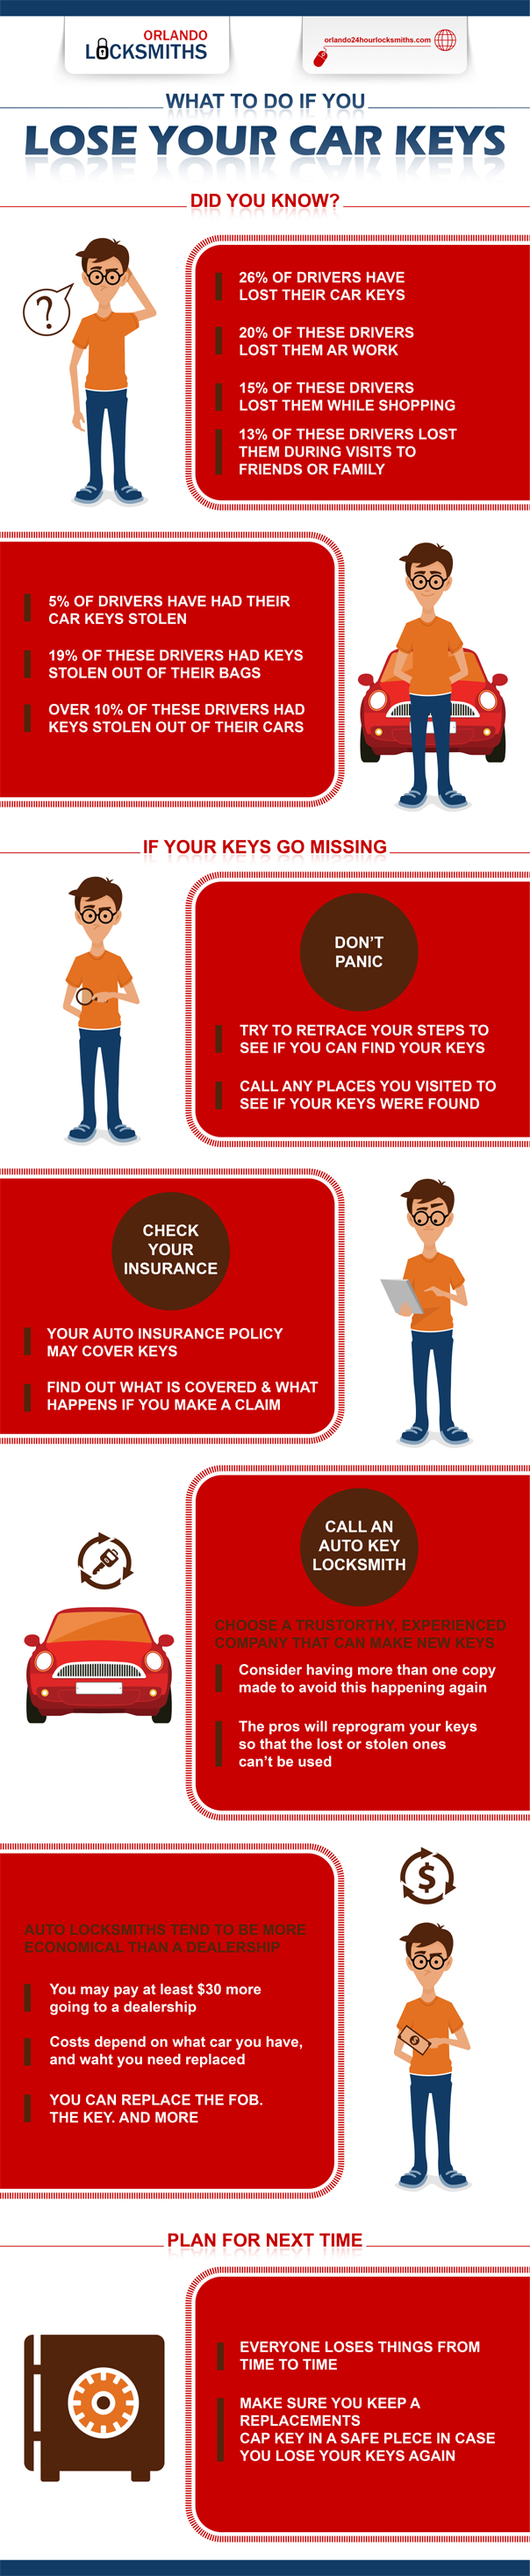 Infographic_Orlando_Locksmith